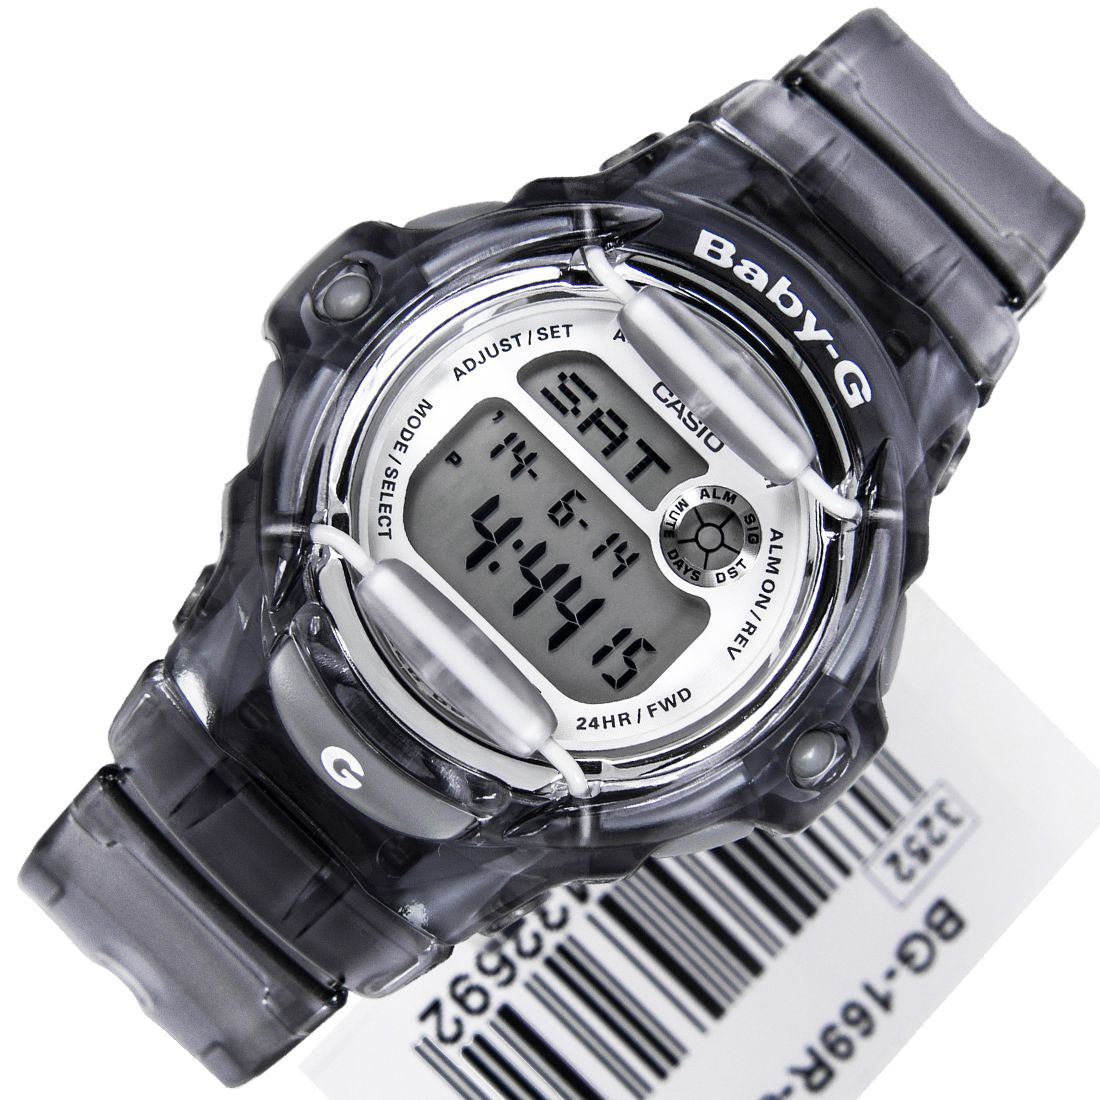 Casio Baby G Bg 169r 8dr Ladies Digital Sports Watch With Images